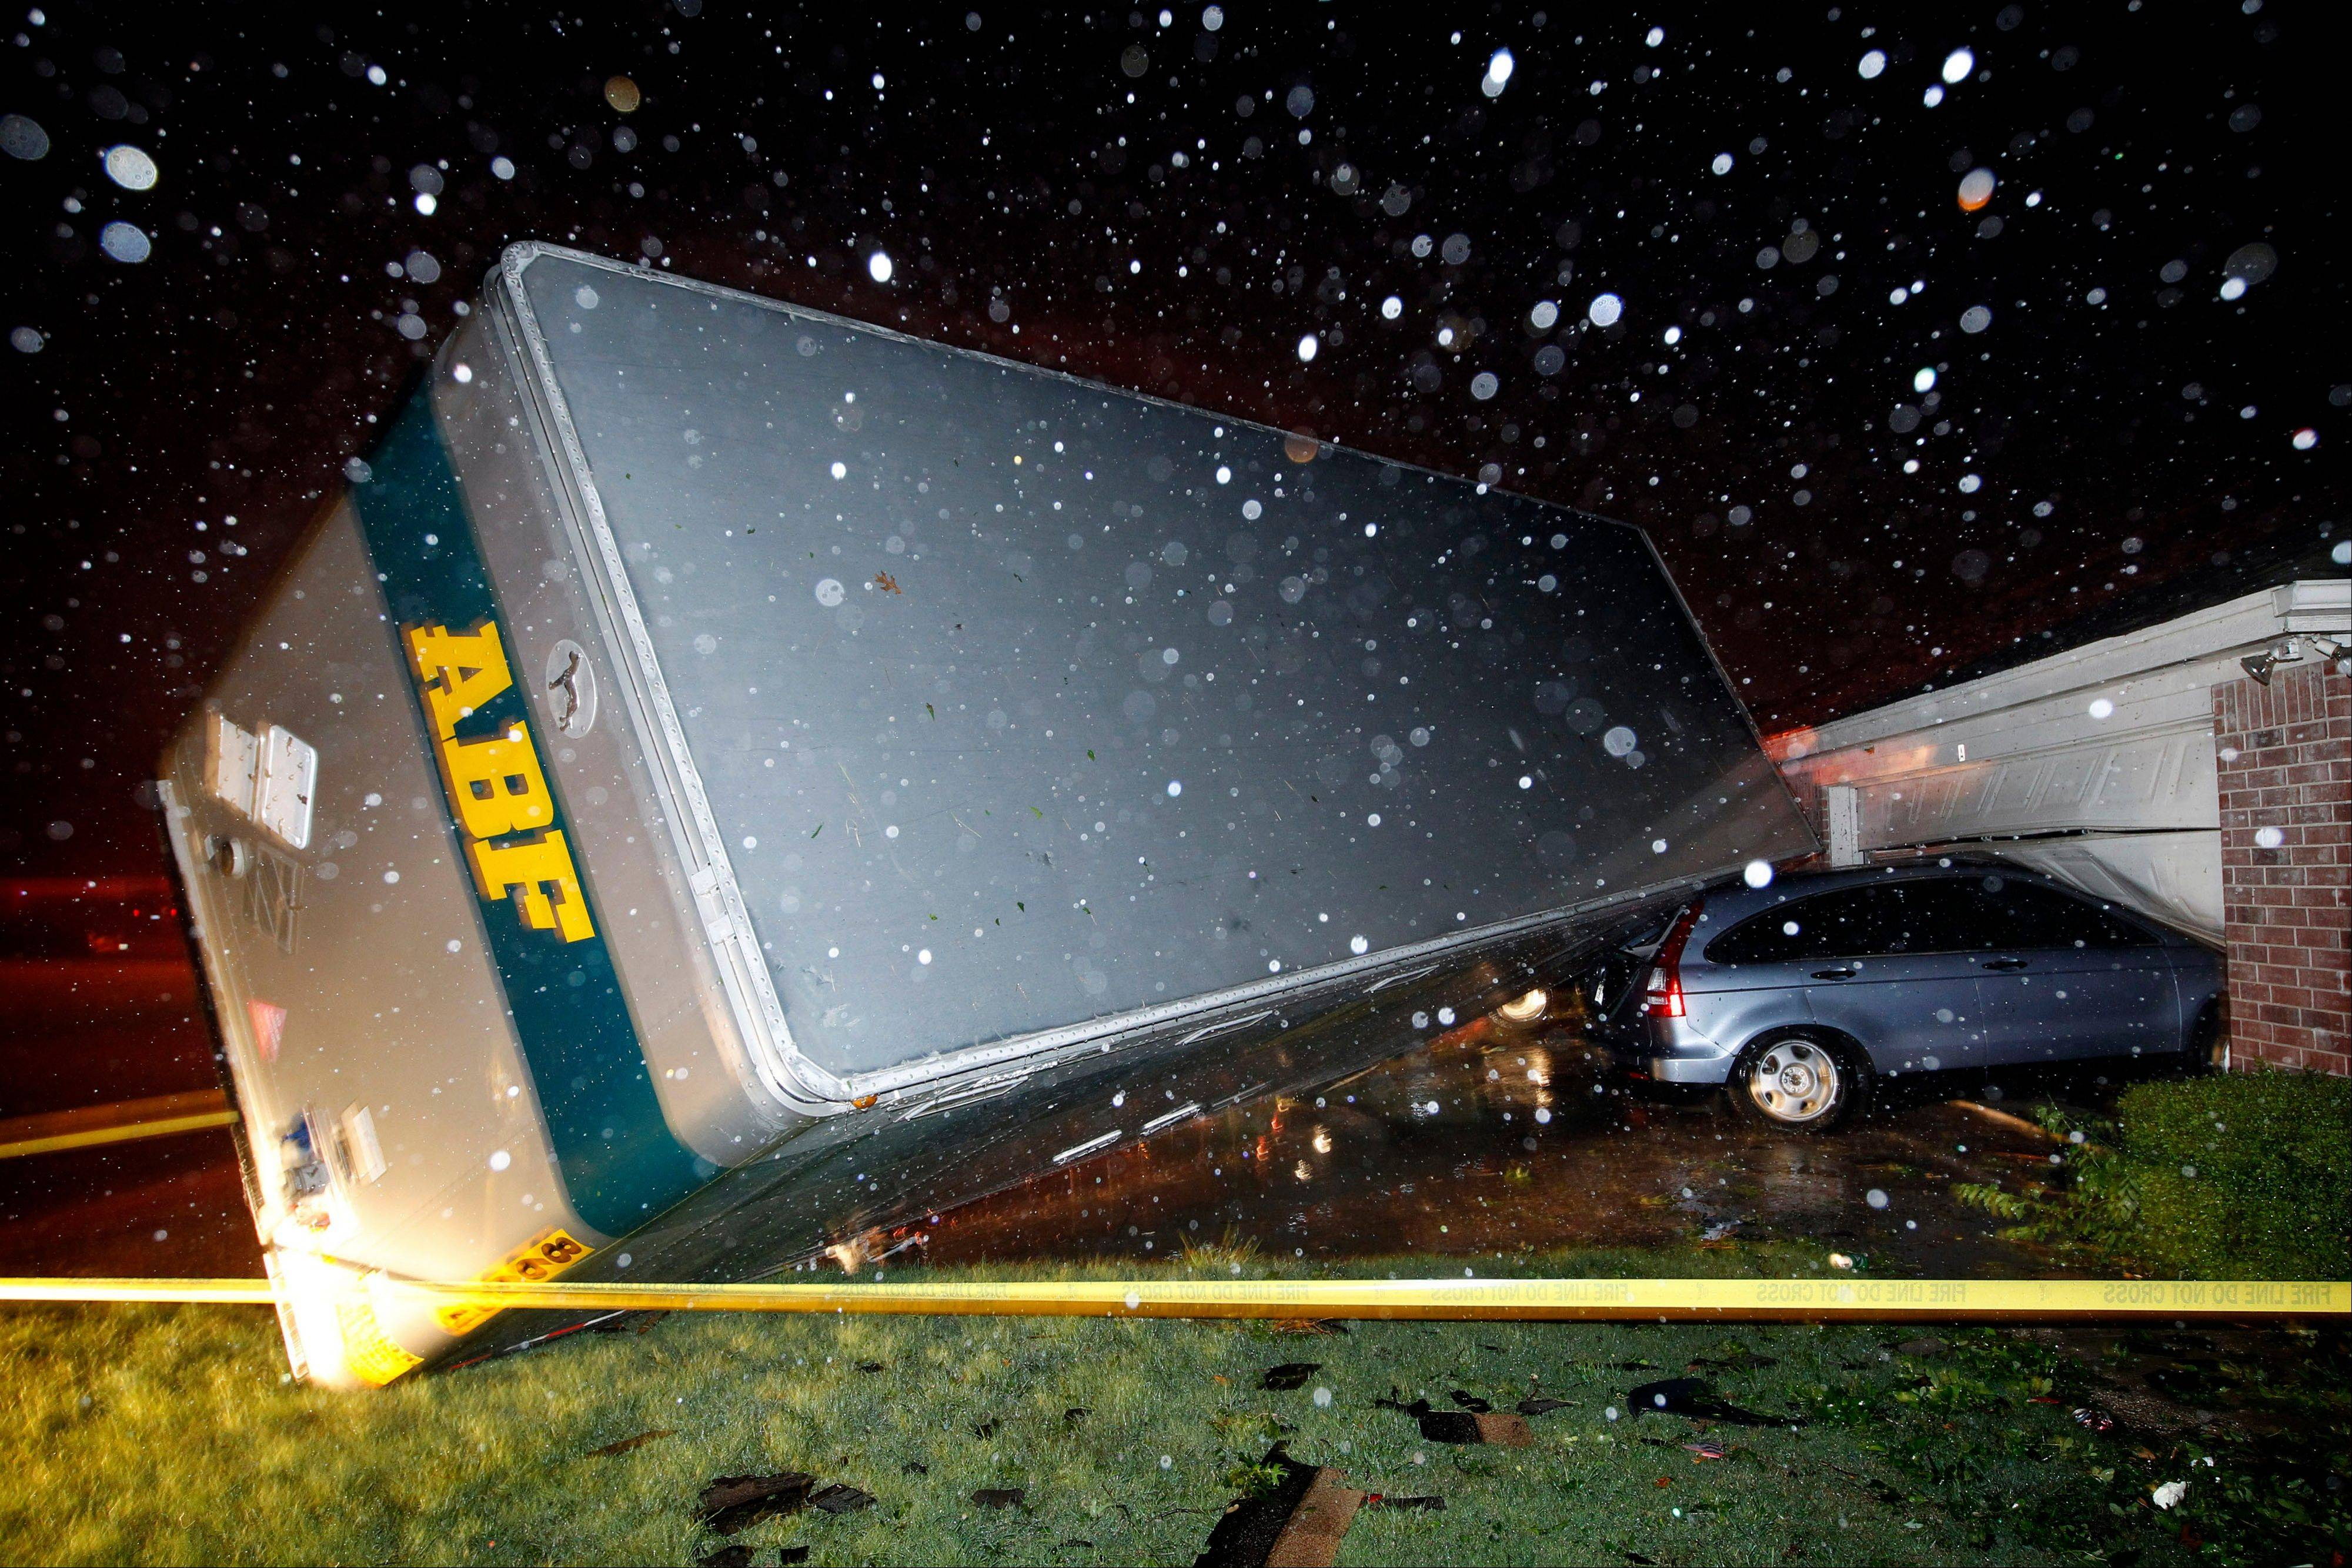 A trucking company trailer landed on a car that was parked in front of a home Wednesday in Cleburne, Texas, after a powerful storm went through Wednesday night. Neighbors say the trailer was parked on the street and was rolled over onto the car.